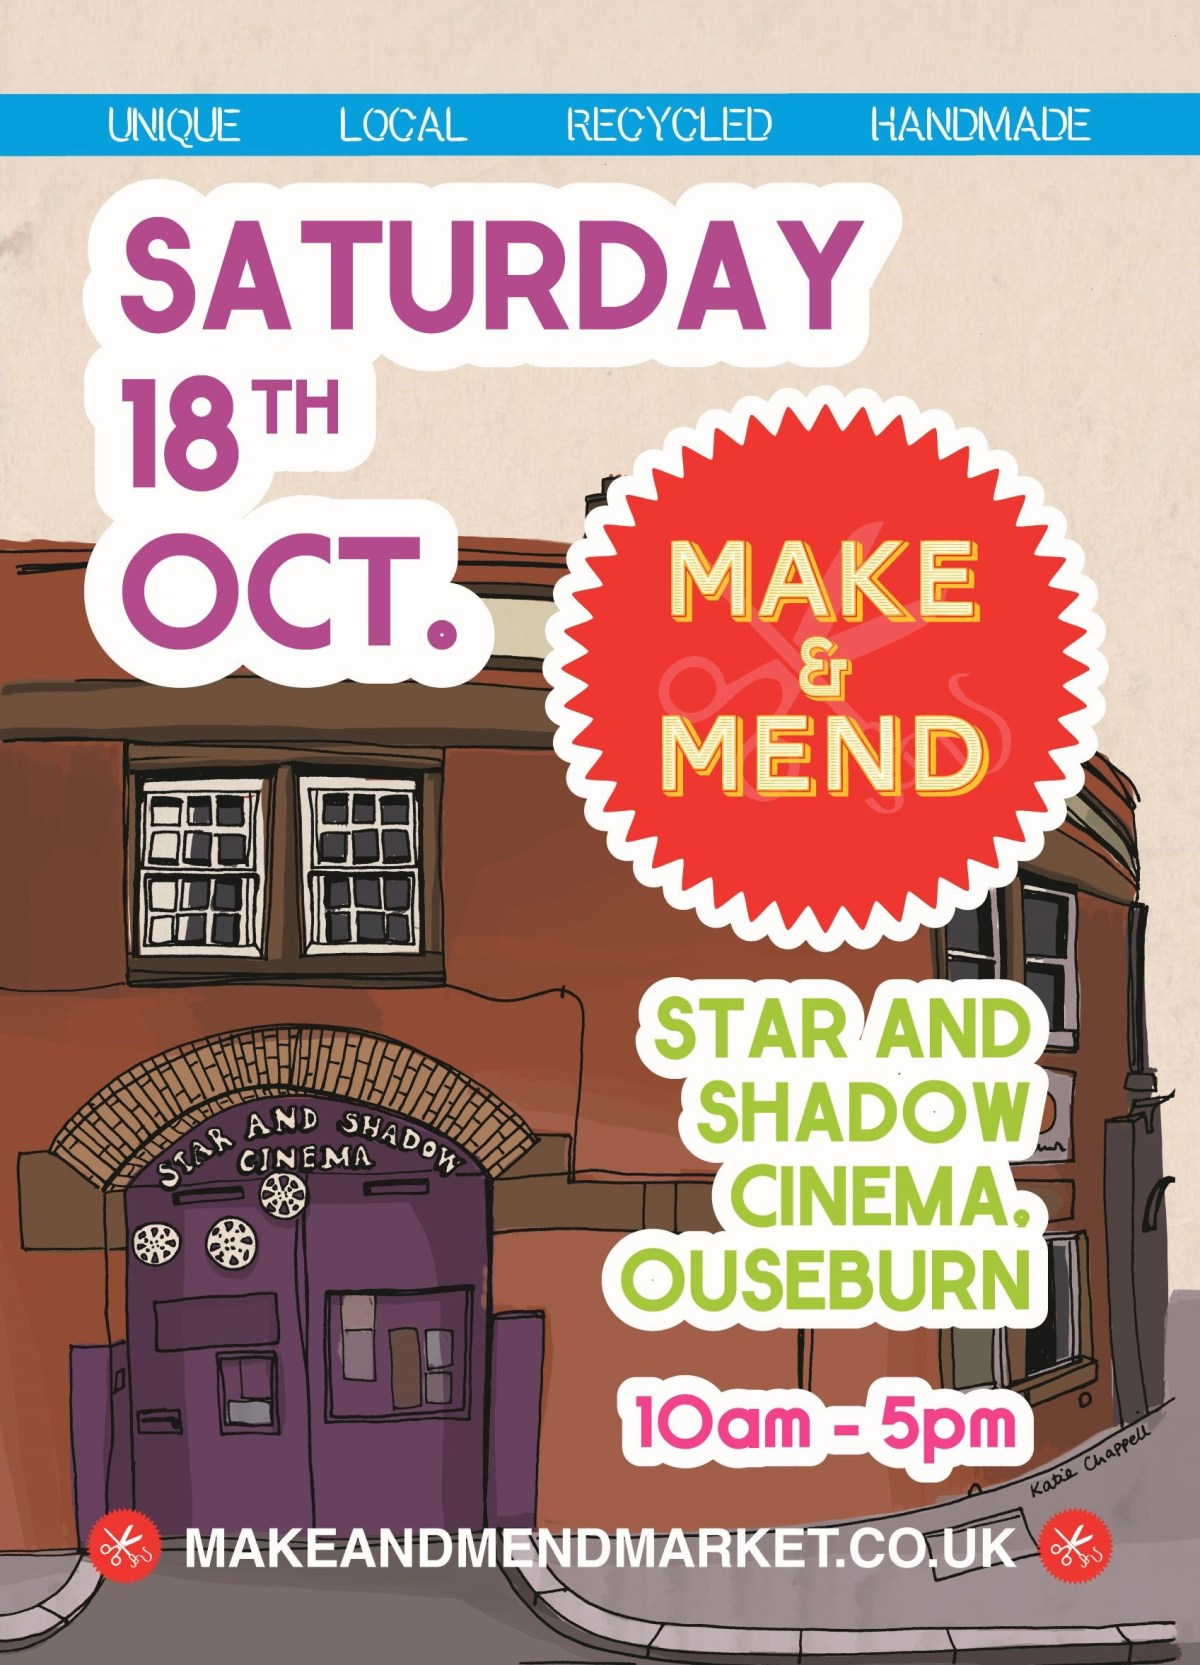 Make & Mend Market Flyer Design - Oct 2014 Star and Shadow Cinema - Illustration by Katie Chappell